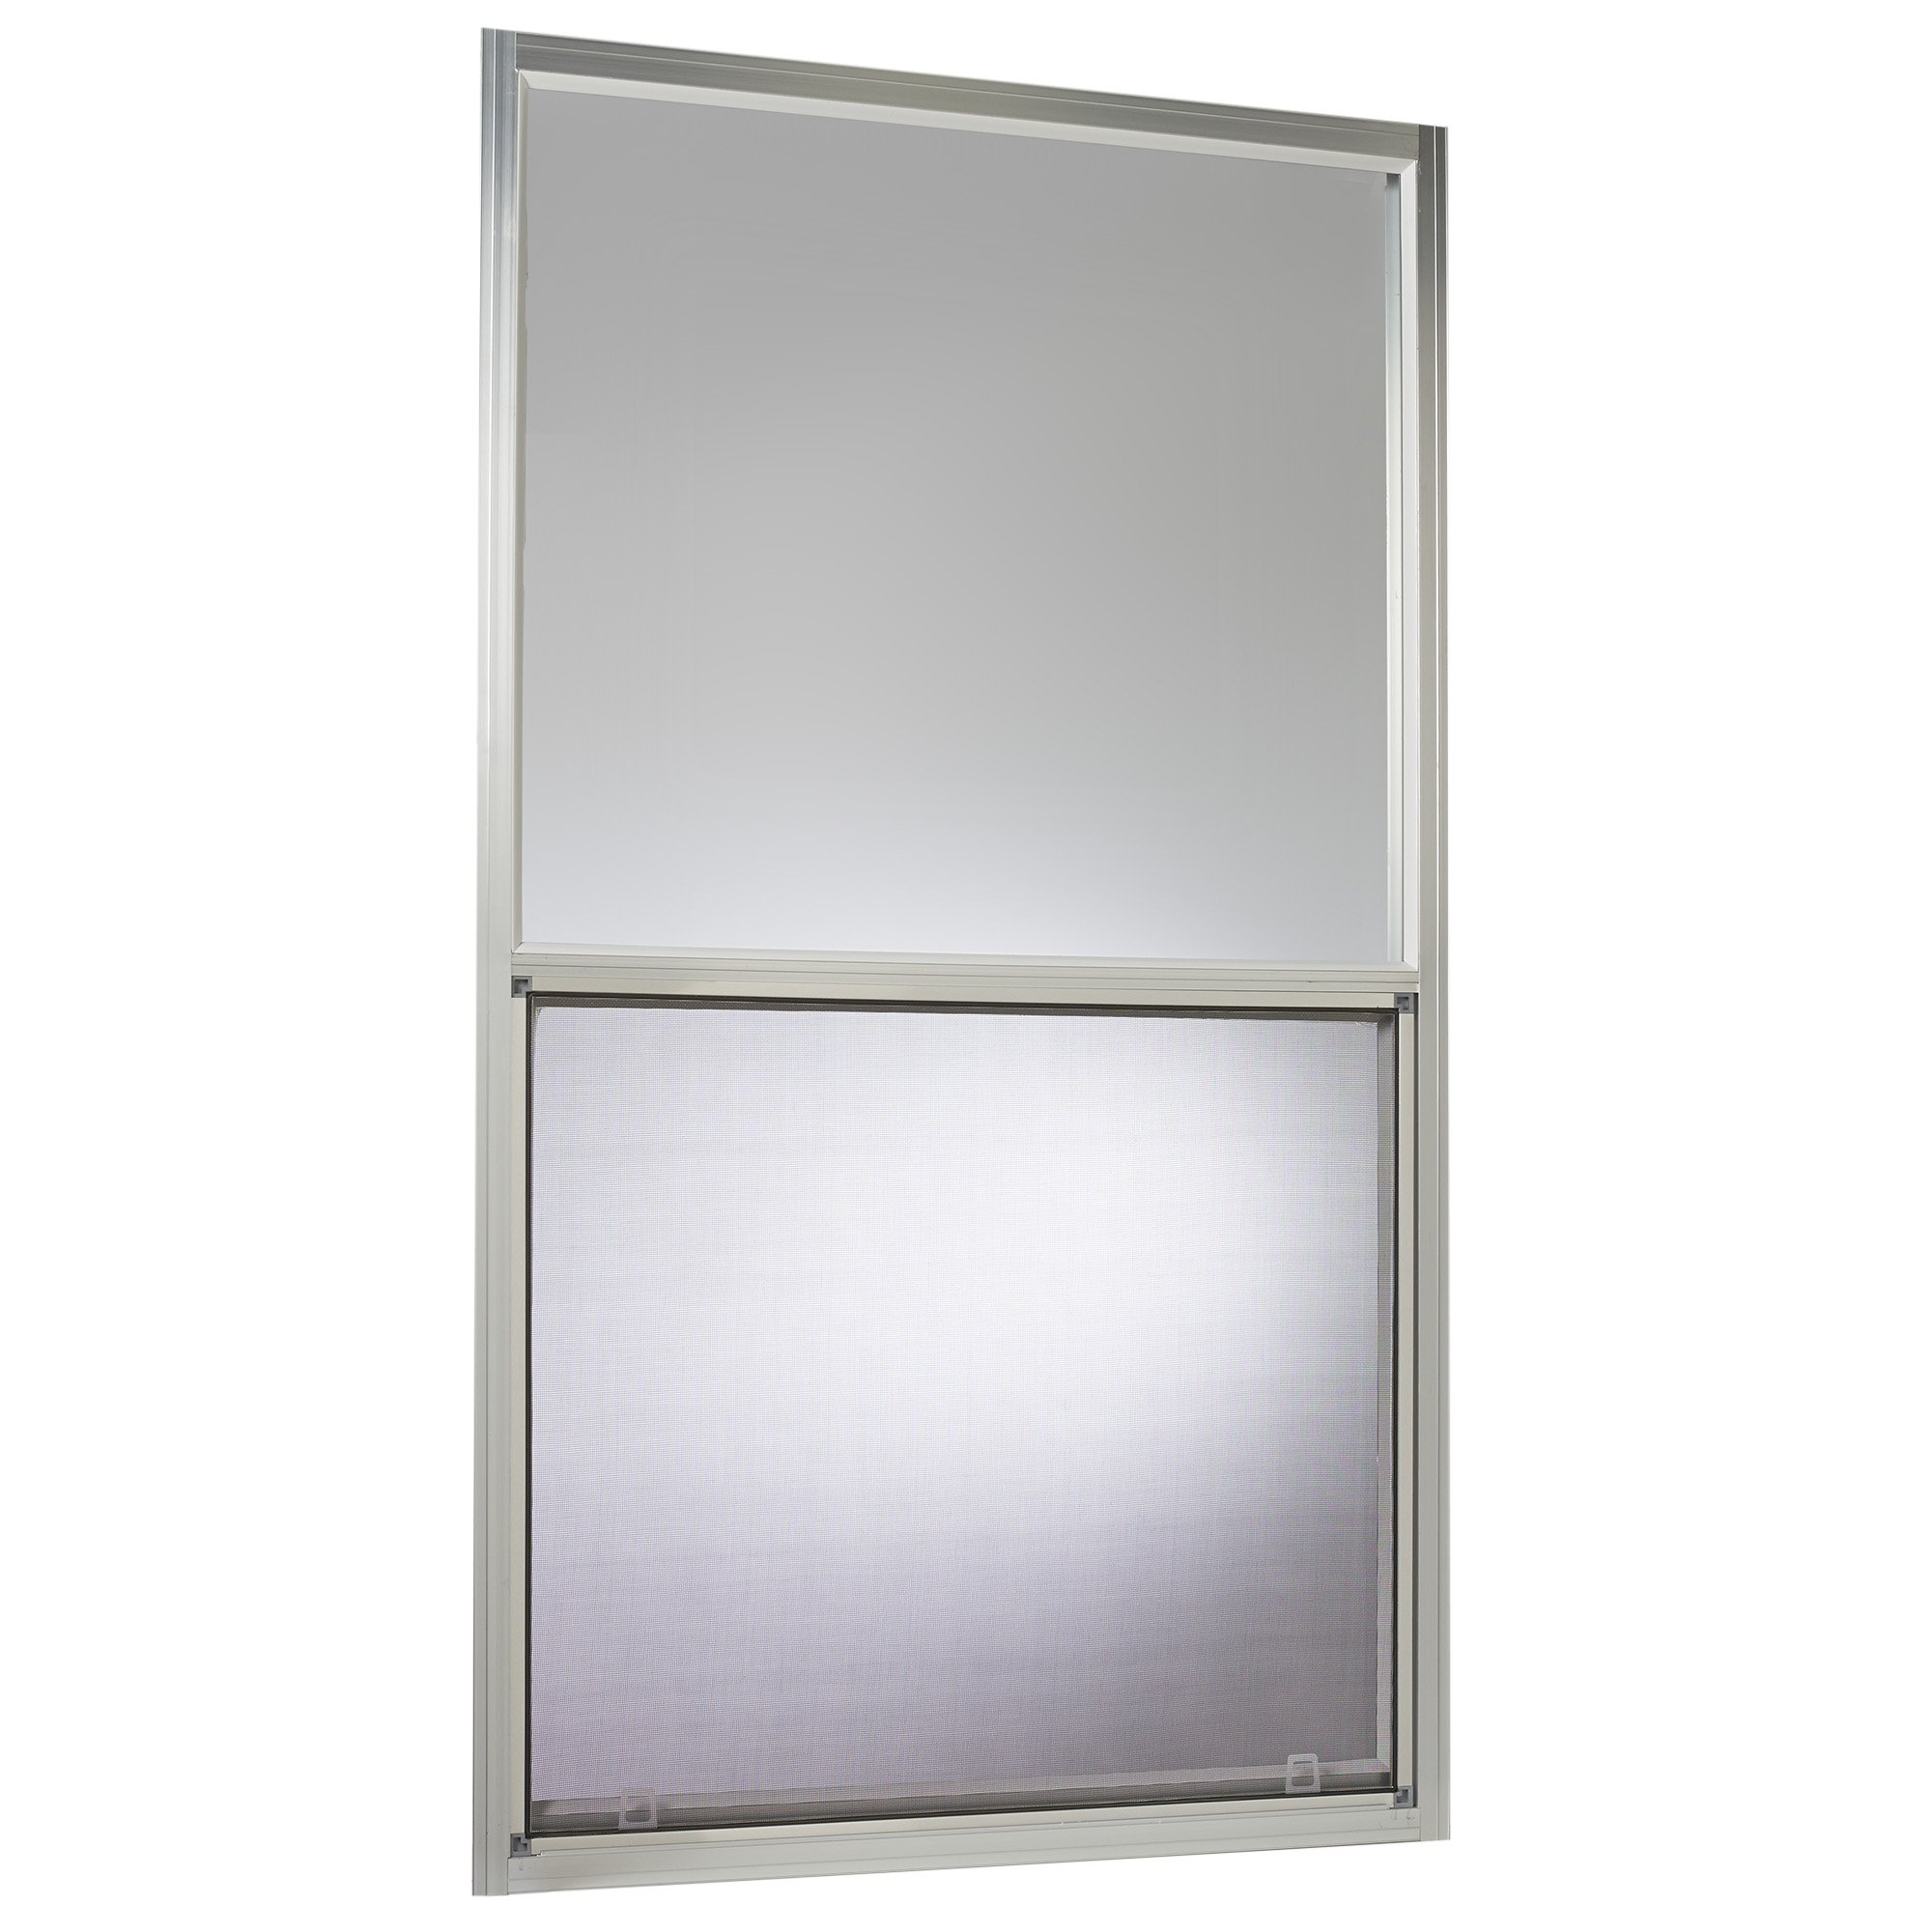 Park Ridge Products AMHMF3054PR Park Ridge Mill Finish 30 in. x 54 in. Aluminum Mobile Home Single Hung Window - Silver by Park Ridge Products